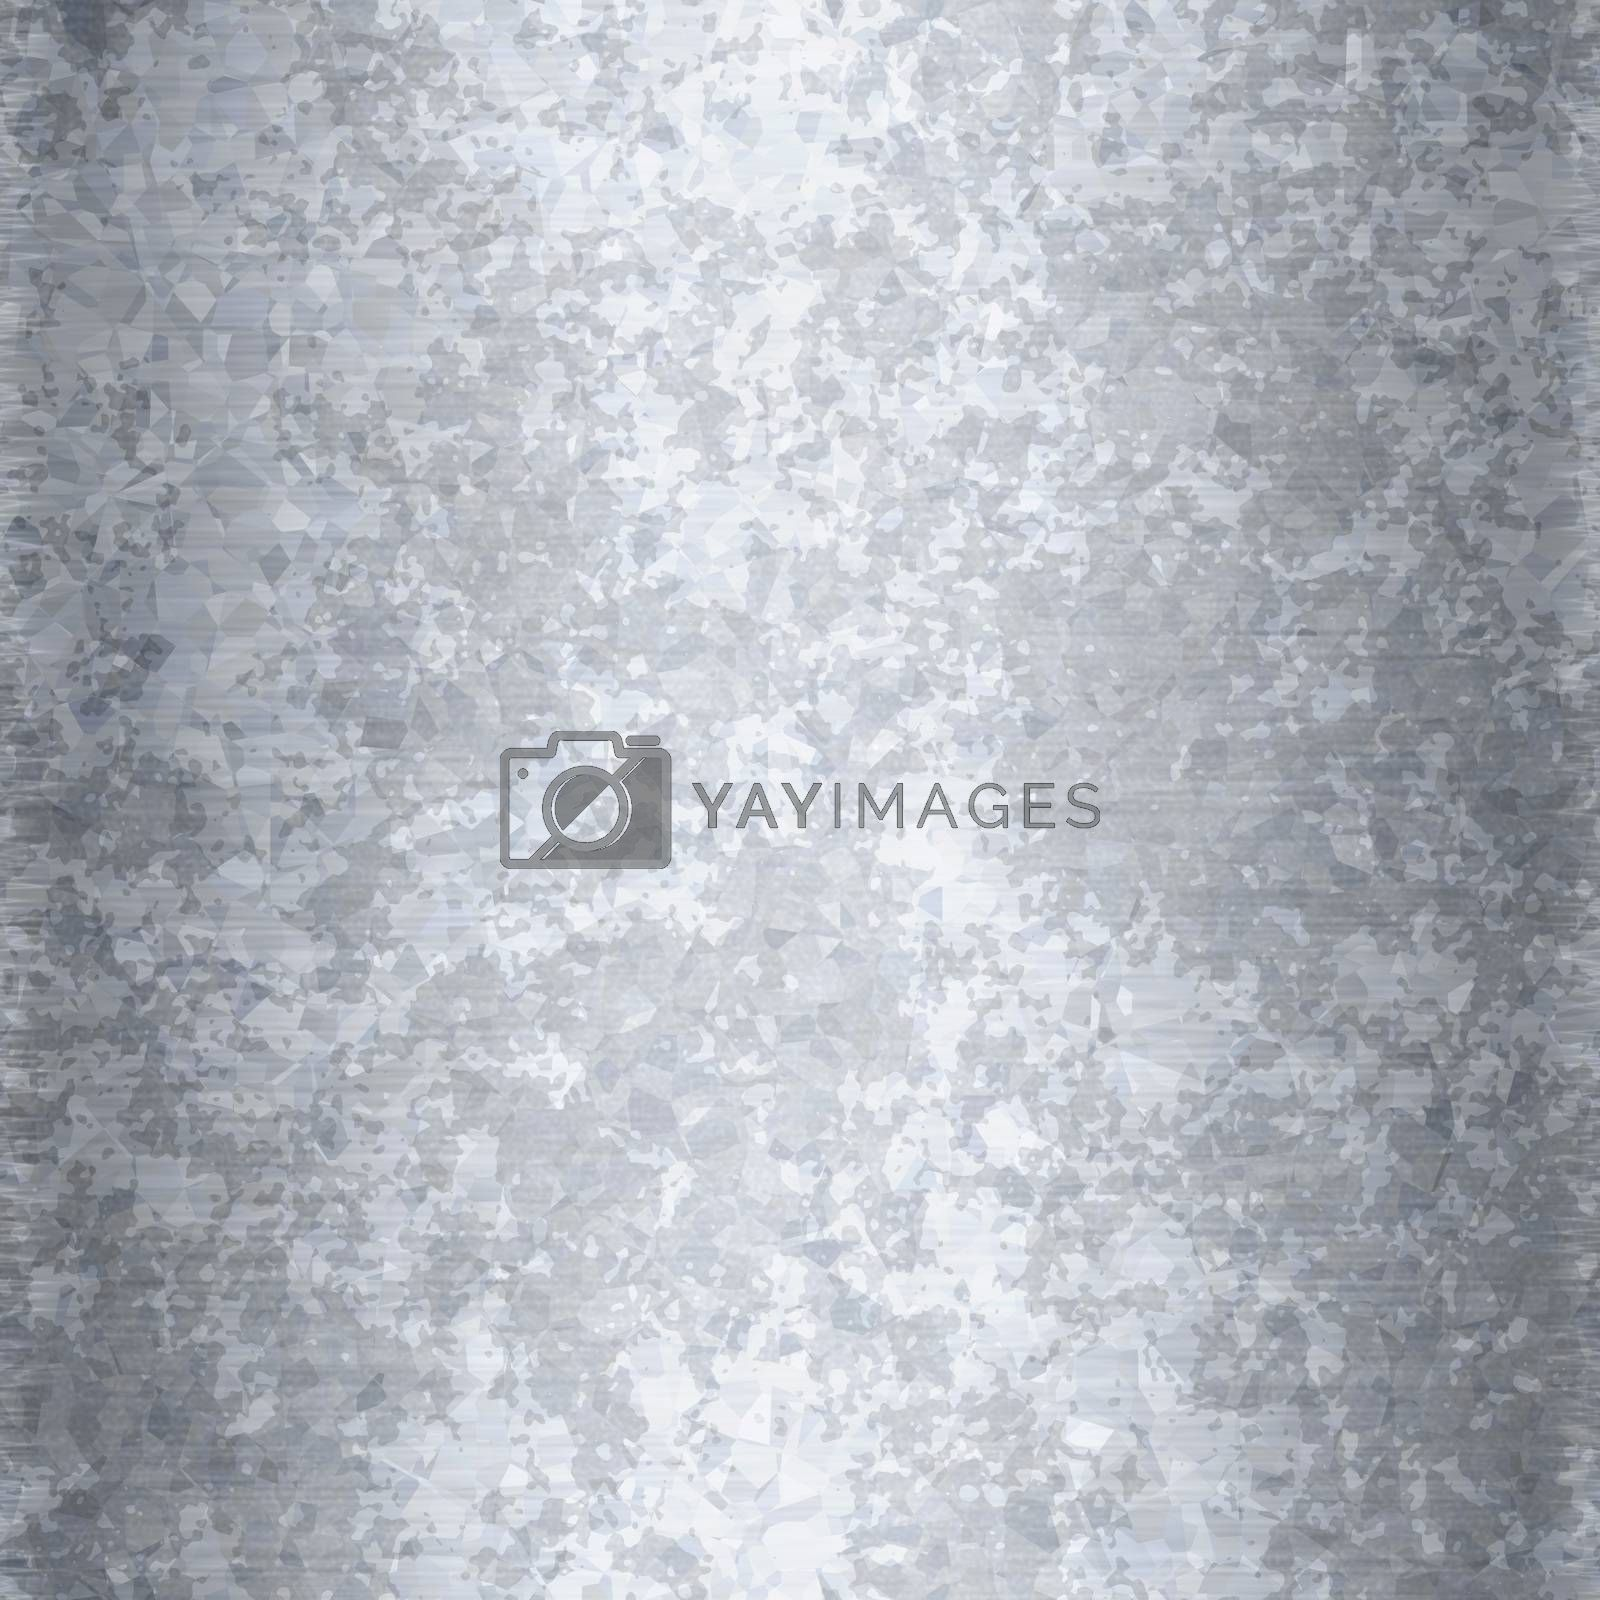 Galvanized metal texture that works as a seamless background pattern.